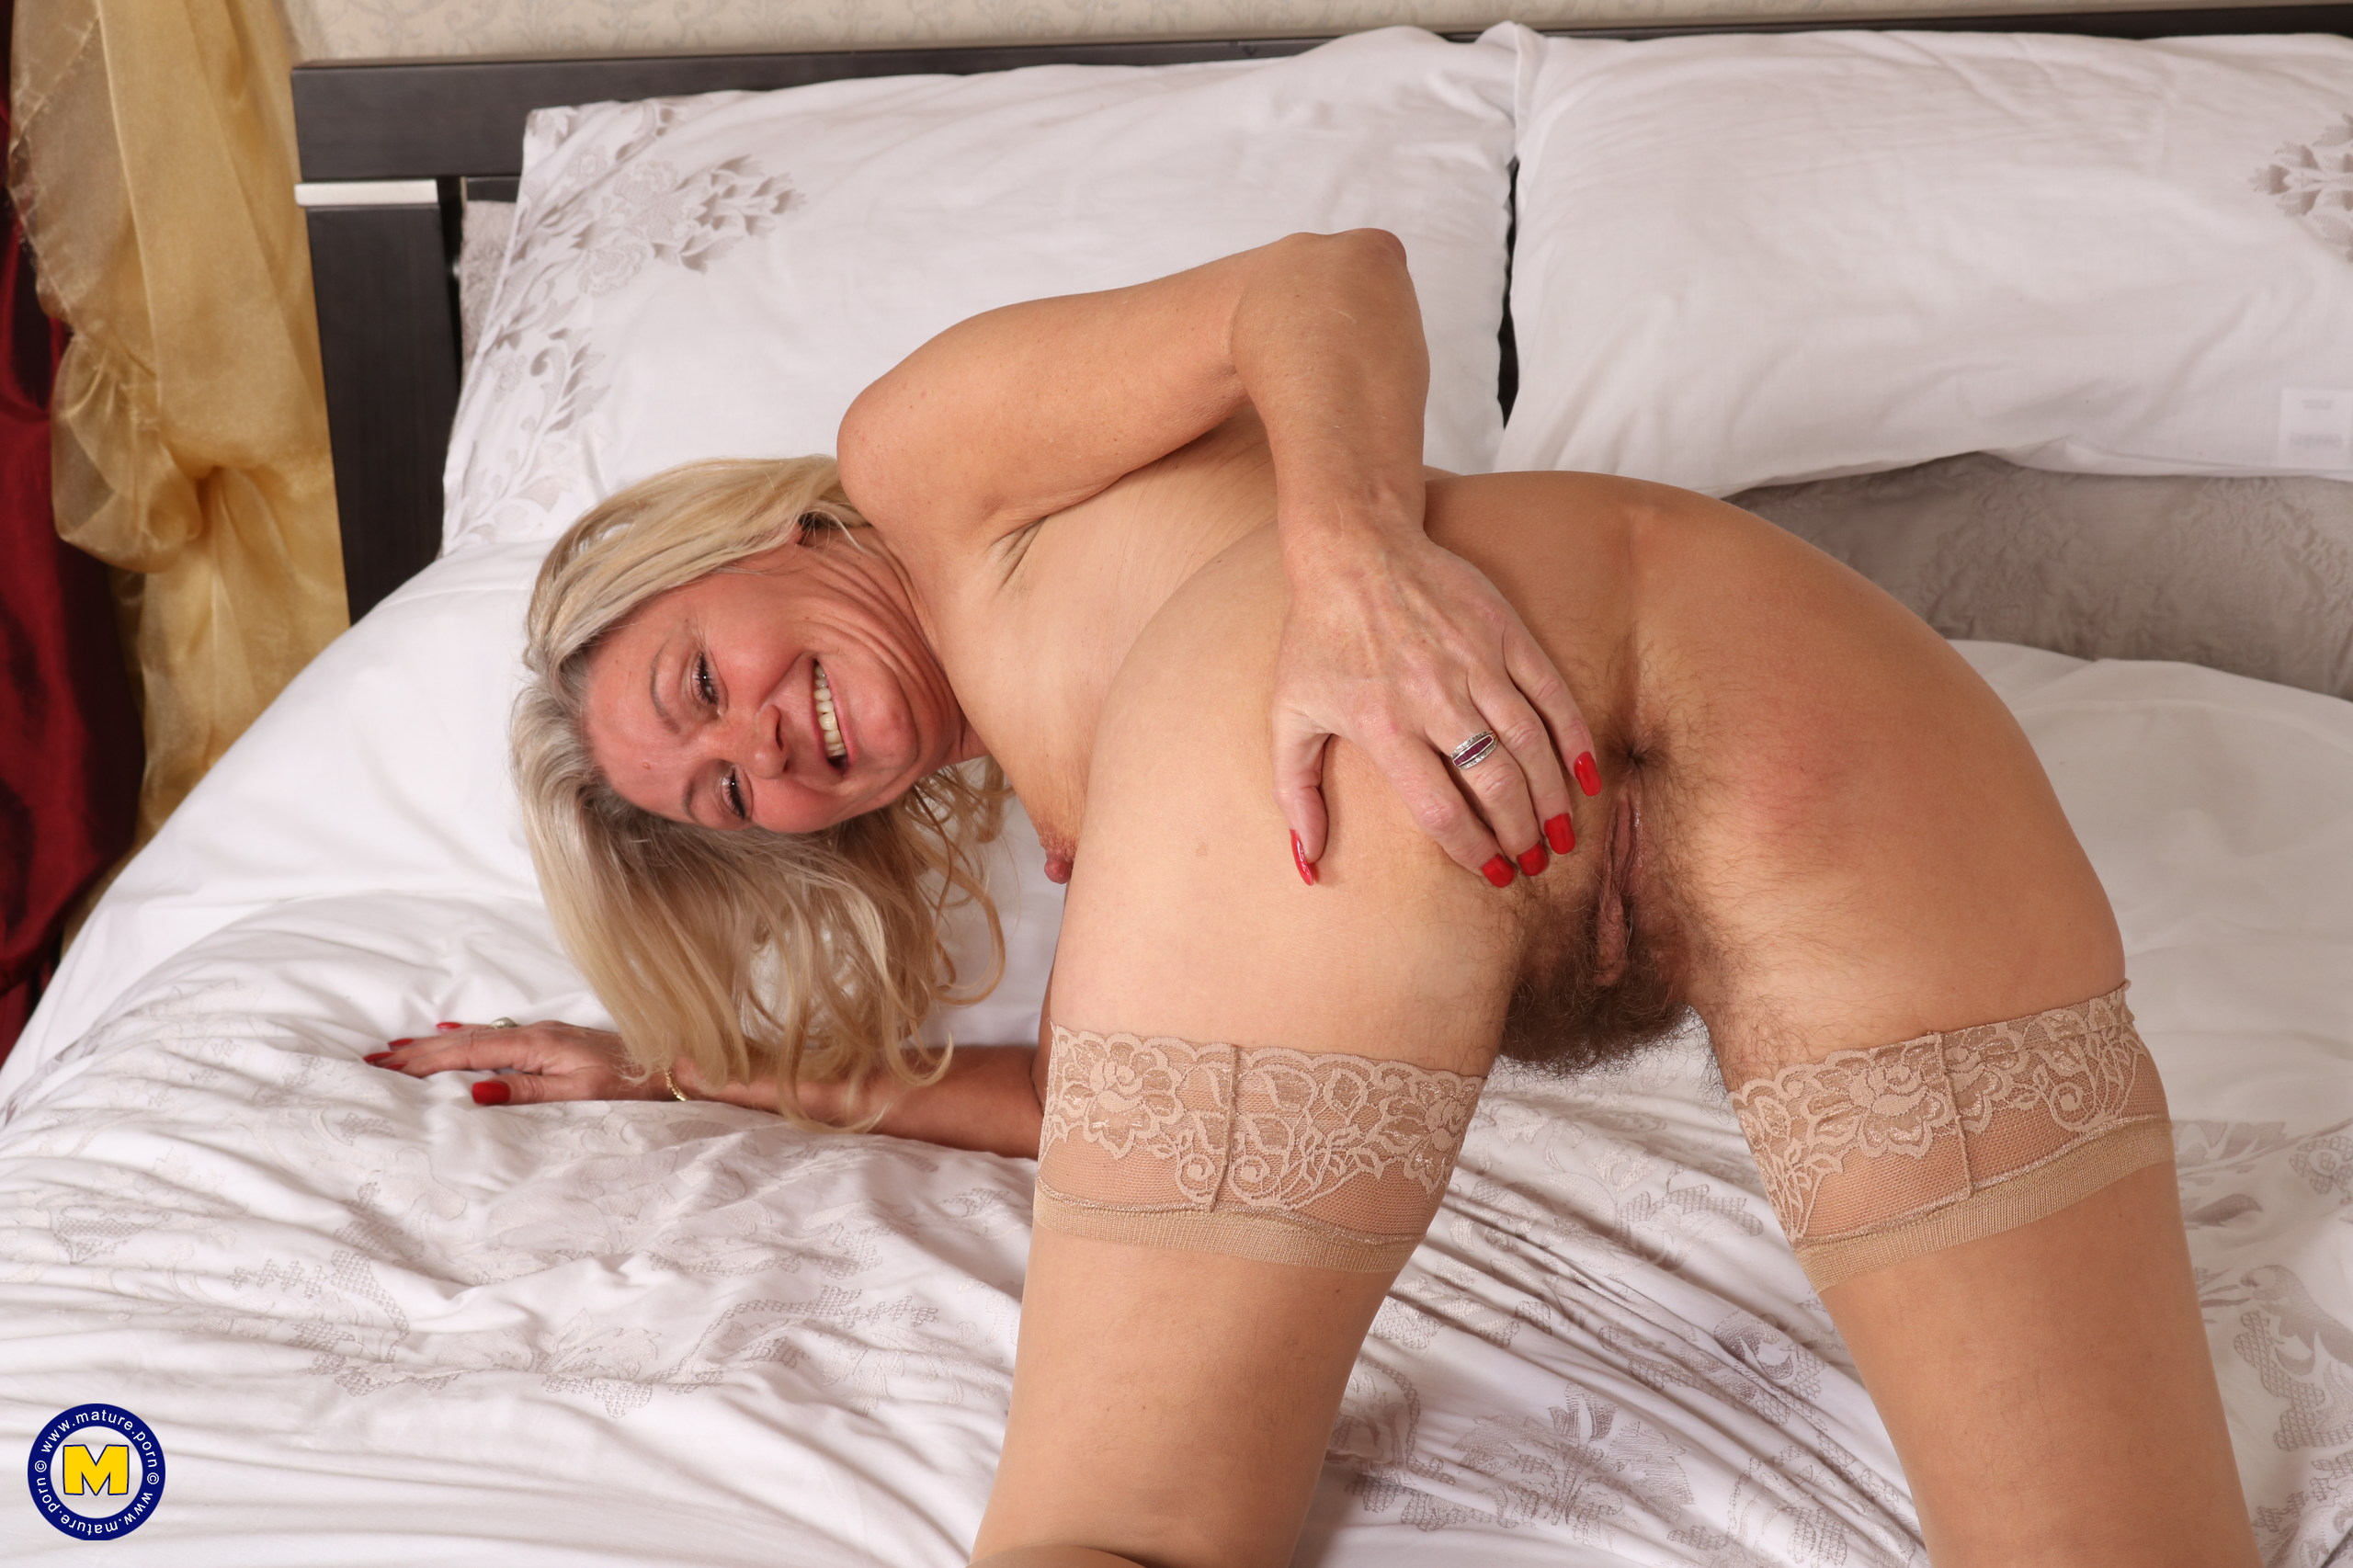 slender golden ager pamela, aged 62  toys her tighty hairy granny cunt with her fingers only #1